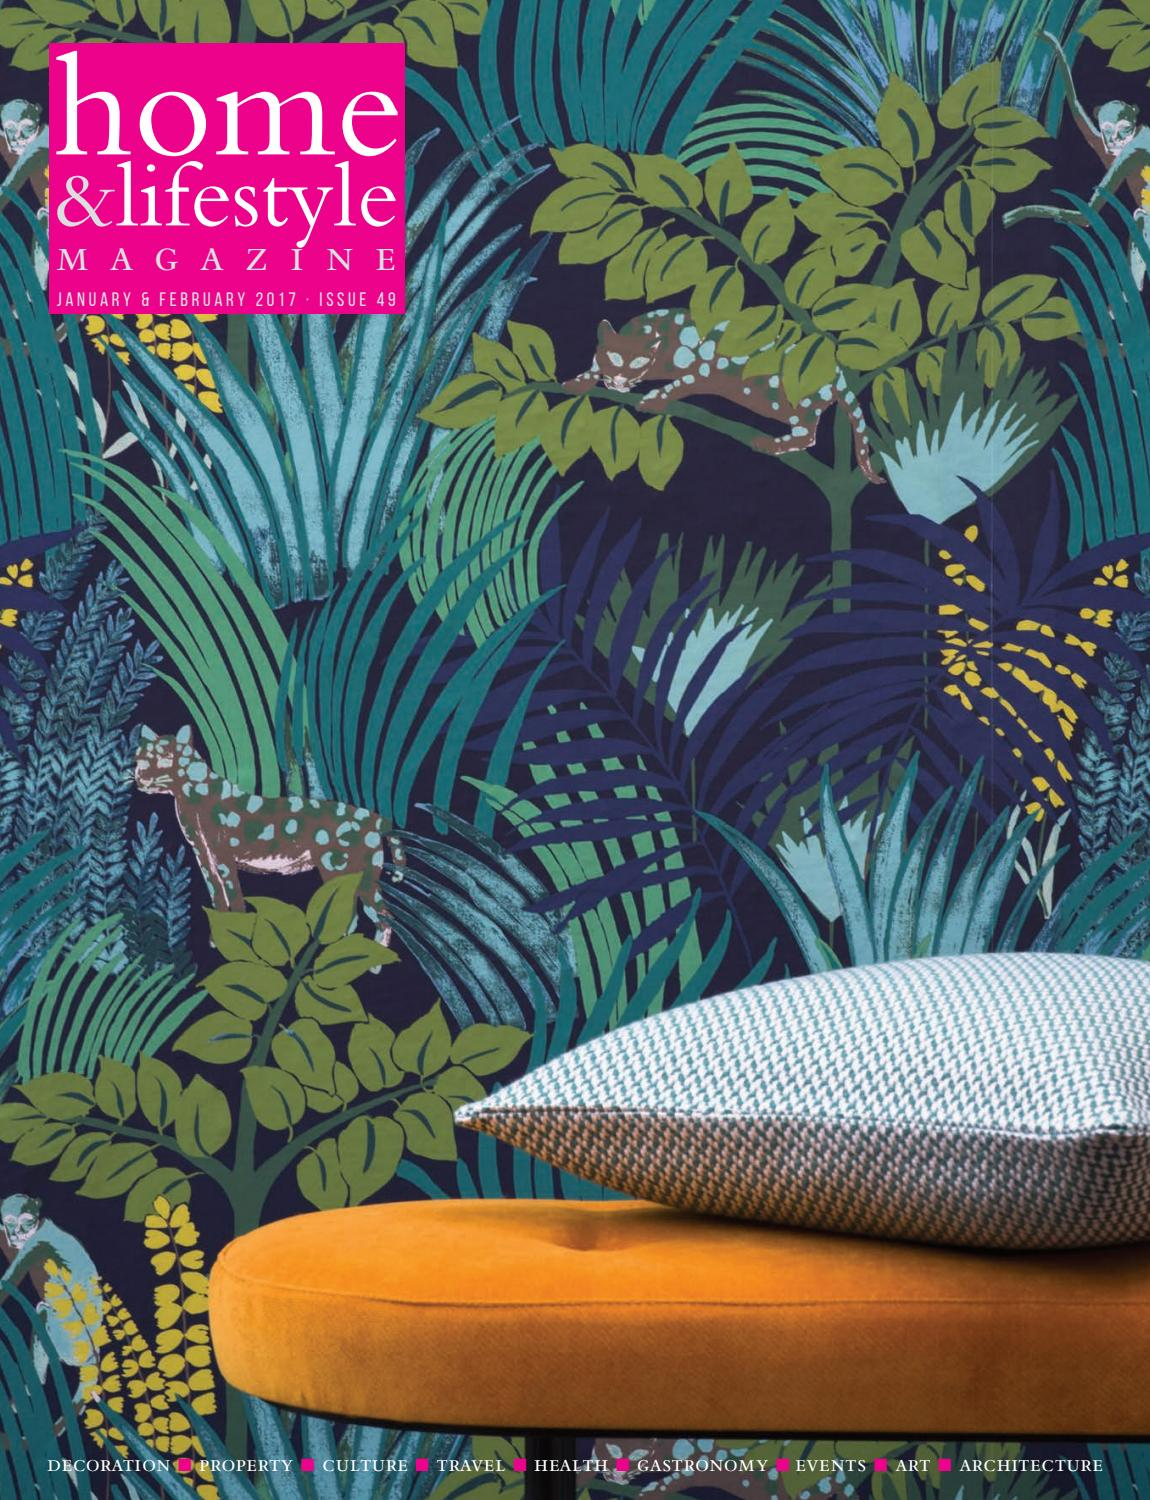 Home & Lifestyle issue 49 by Home & Lifestyle Magazine - issuu